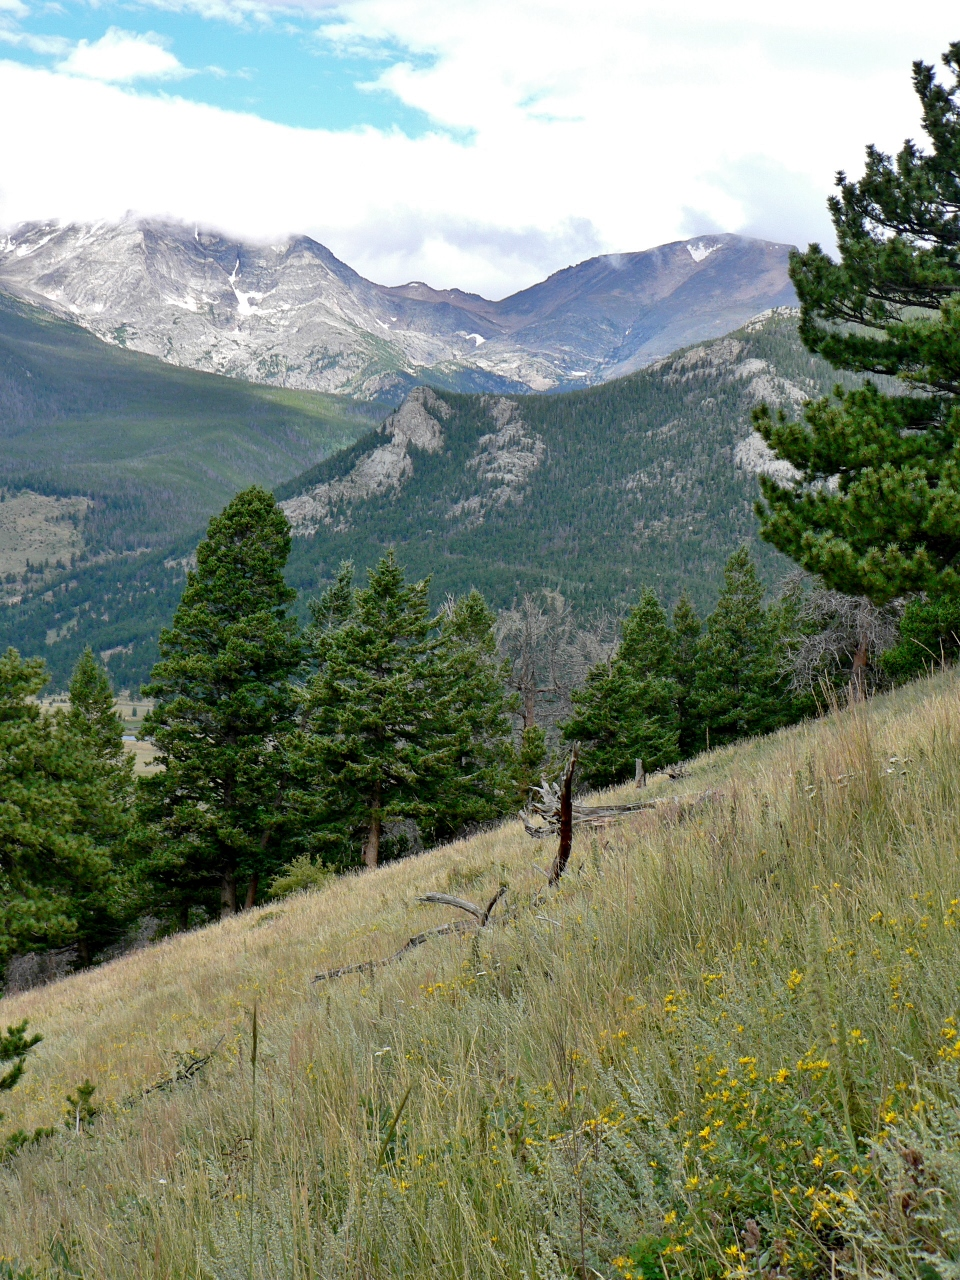 Trail up to Deer Mountain, RMNP